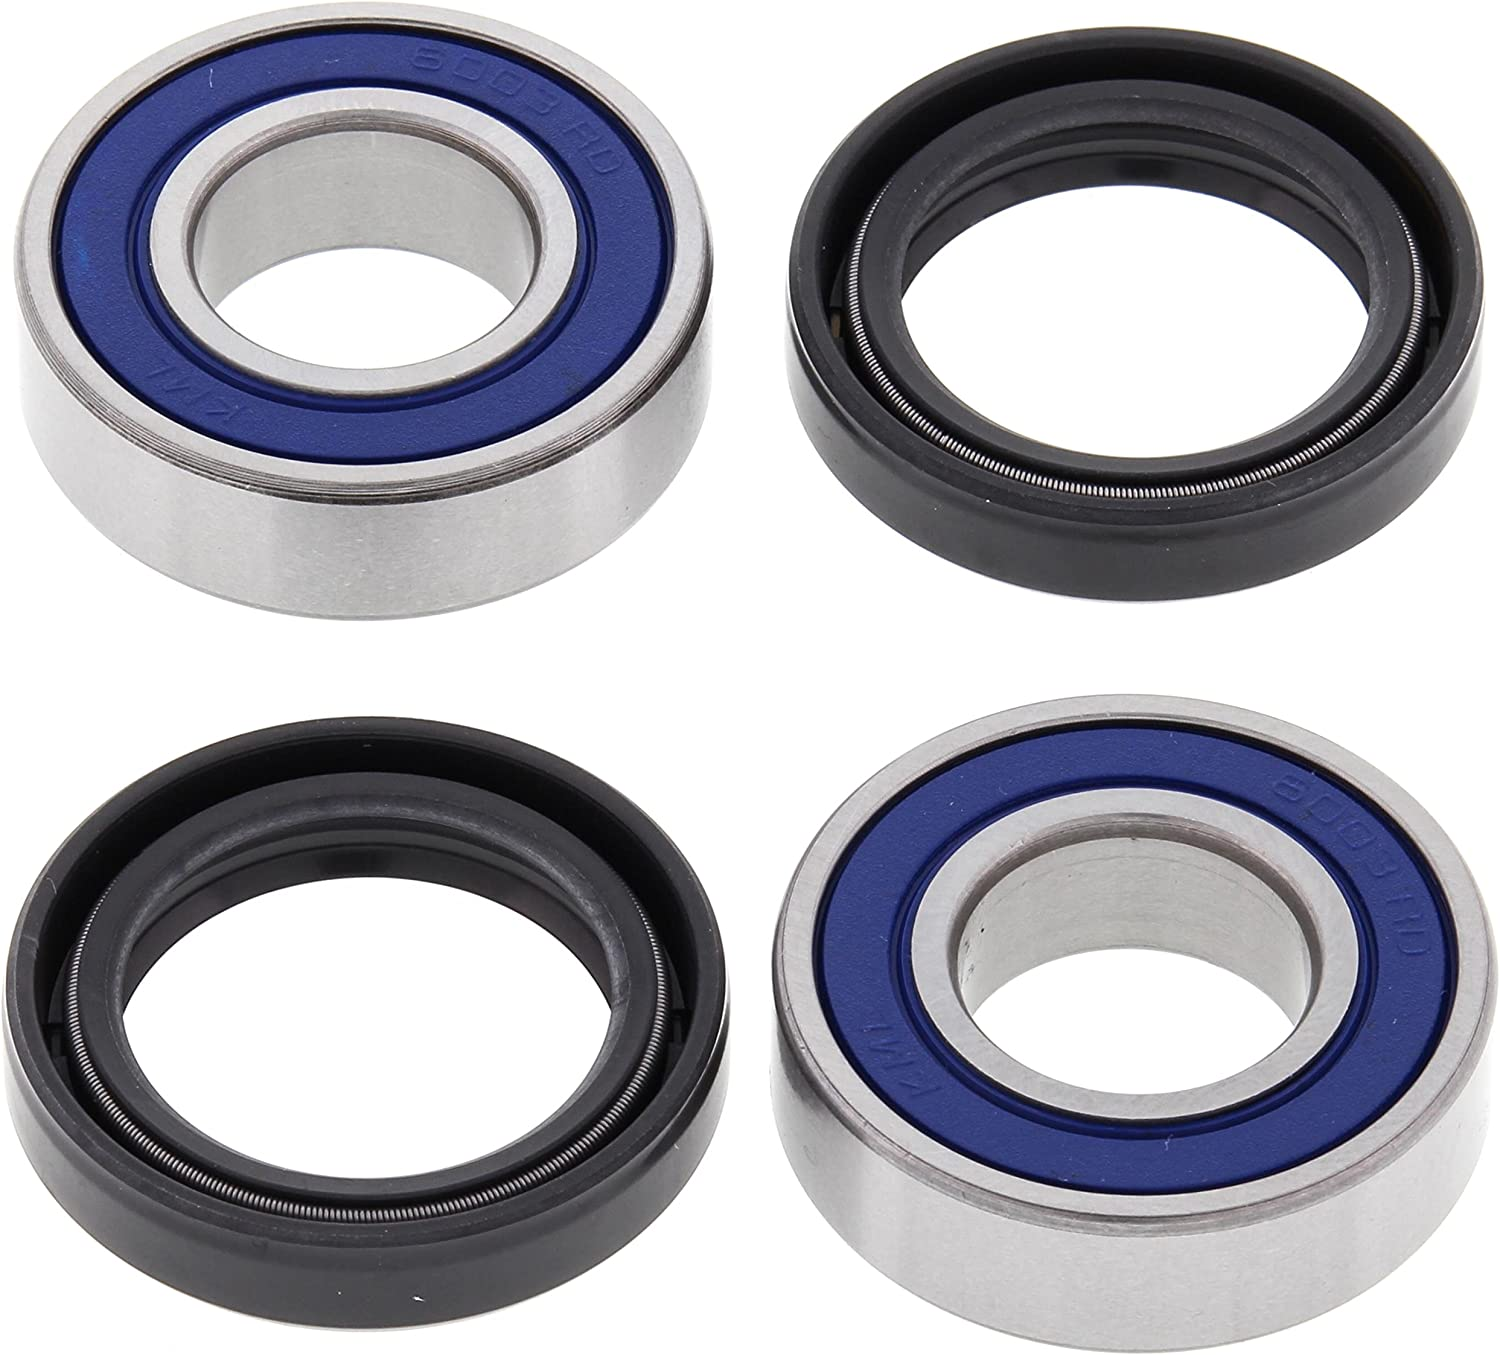 125 SX 1993-1999 All Balls Front Wheel Bearing Kit 25-1063 Compatible With//Replacement For KTM 105 SX 2006-2011 105 XC 2008 2009